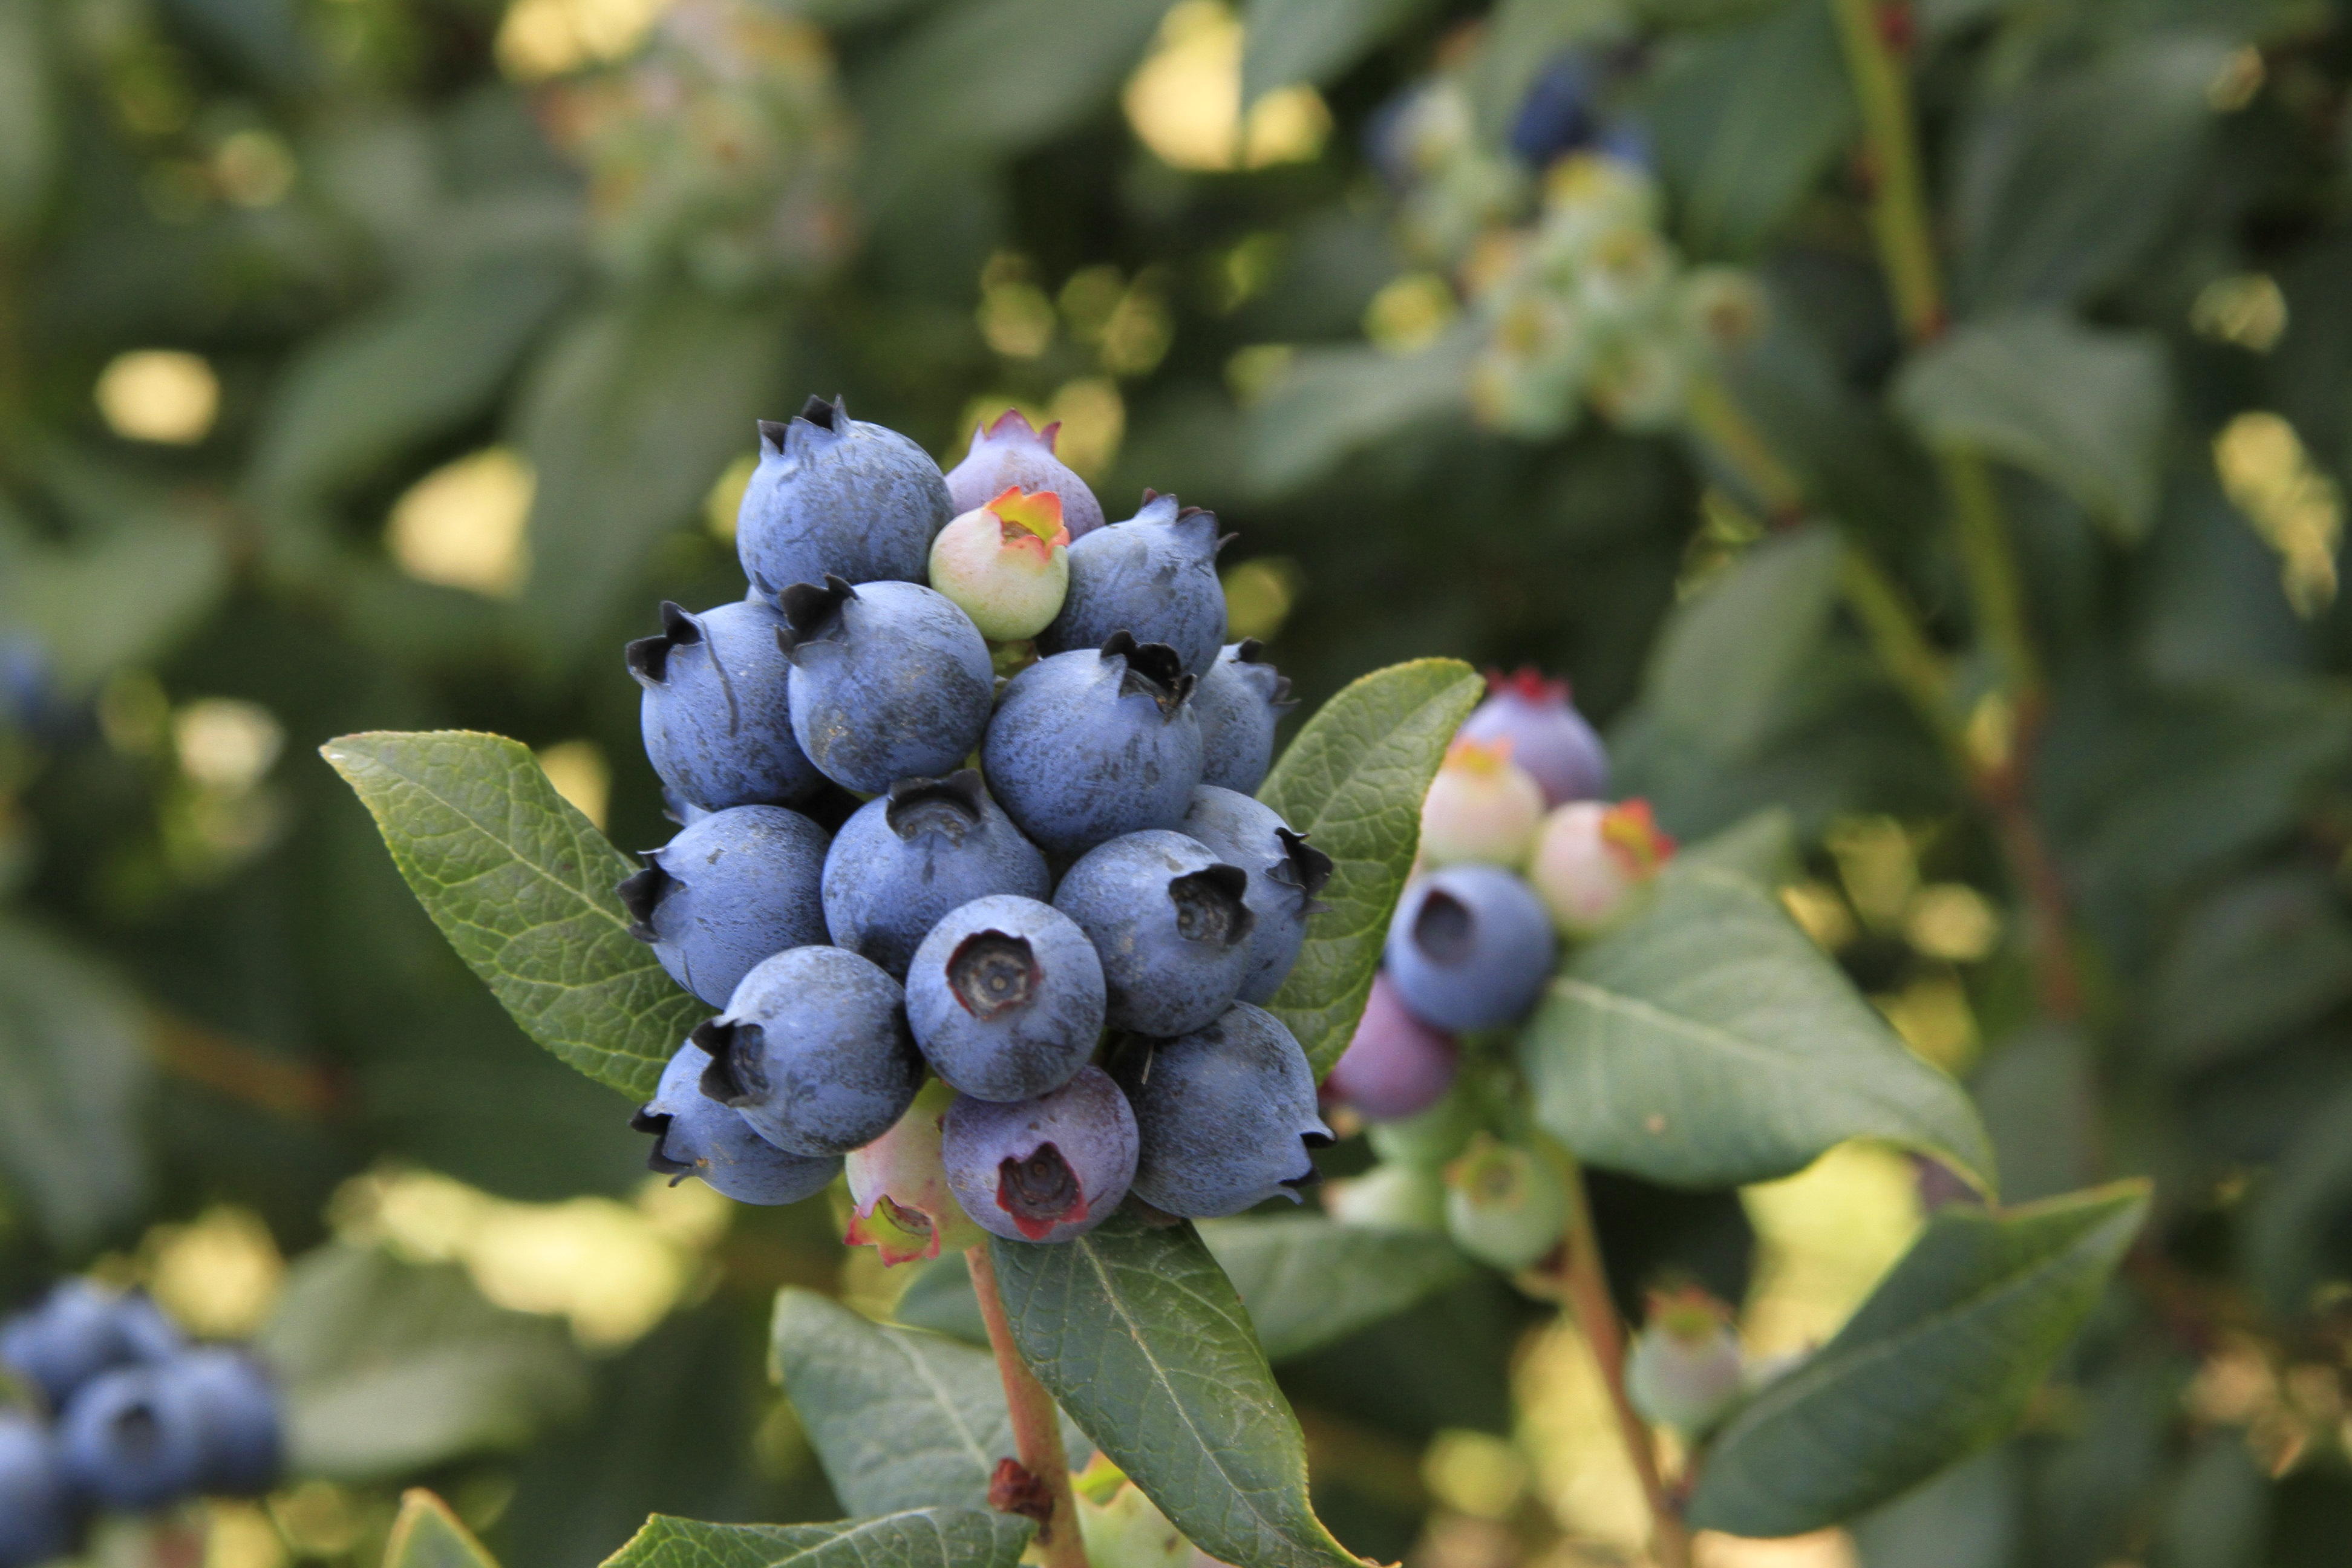 BRAZELBERRIES_Perpetua_Blueberry_Fall_Creek_all_rights_reserved.jpg